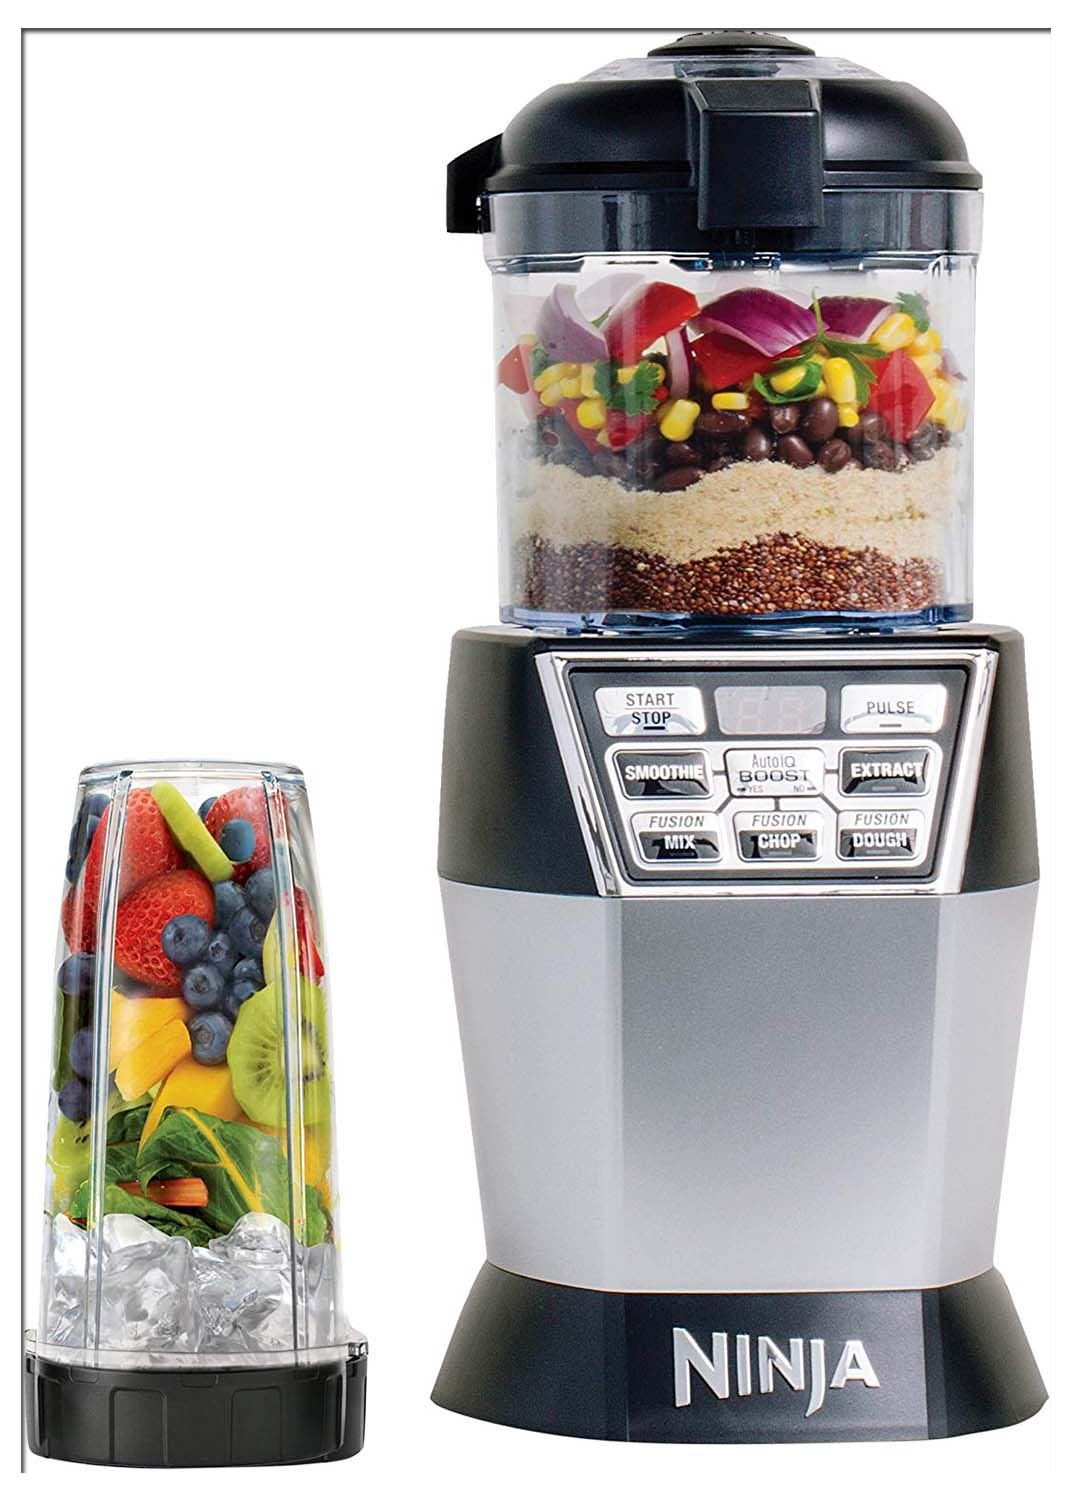 Ninja Ninja Nutri Bowl Duo with Auto-iQ Boost